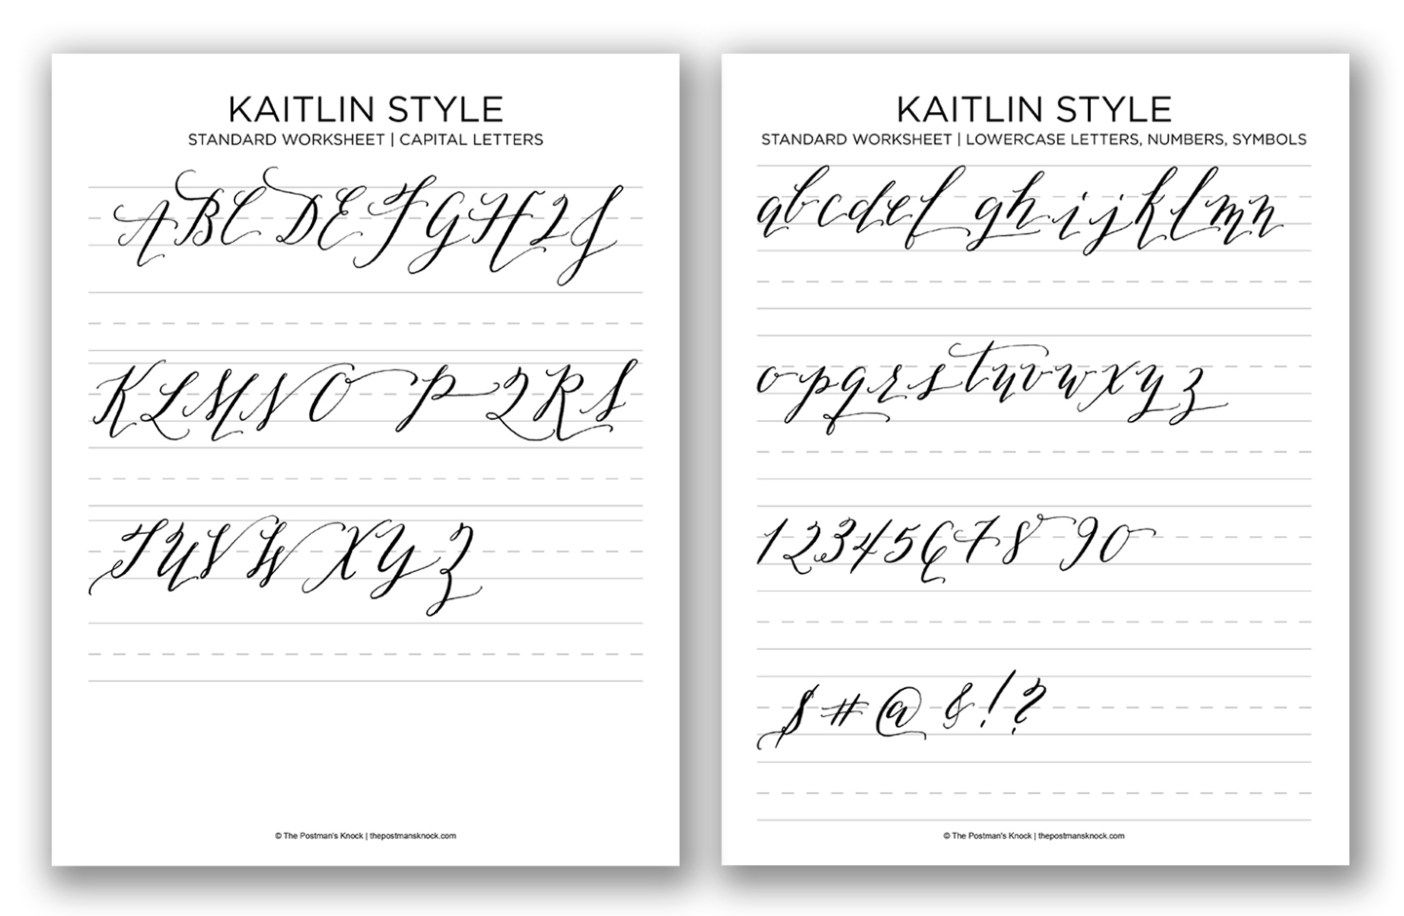 Kaitlin Style Calligraphy Worksheet The Postman S Knock